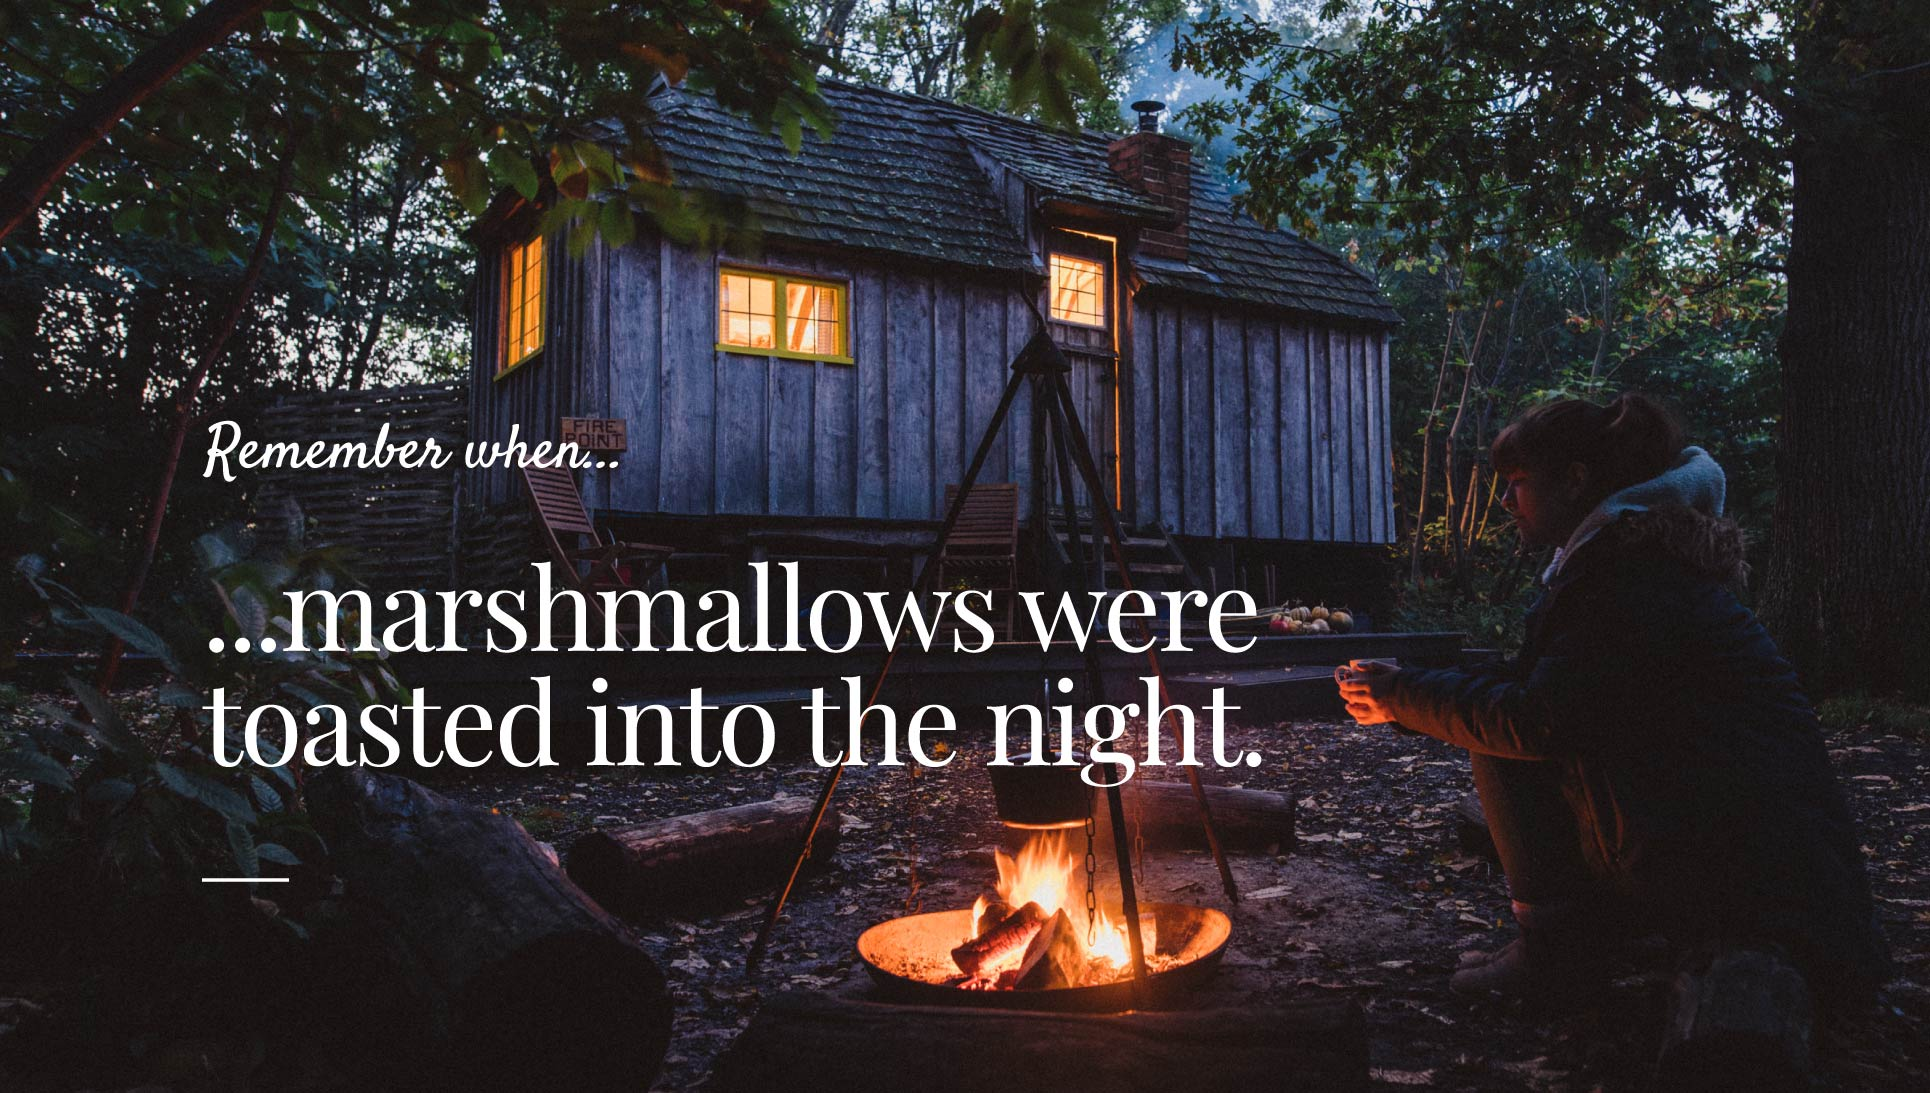 Remember when marshmallows were toasted into the night graphic design.